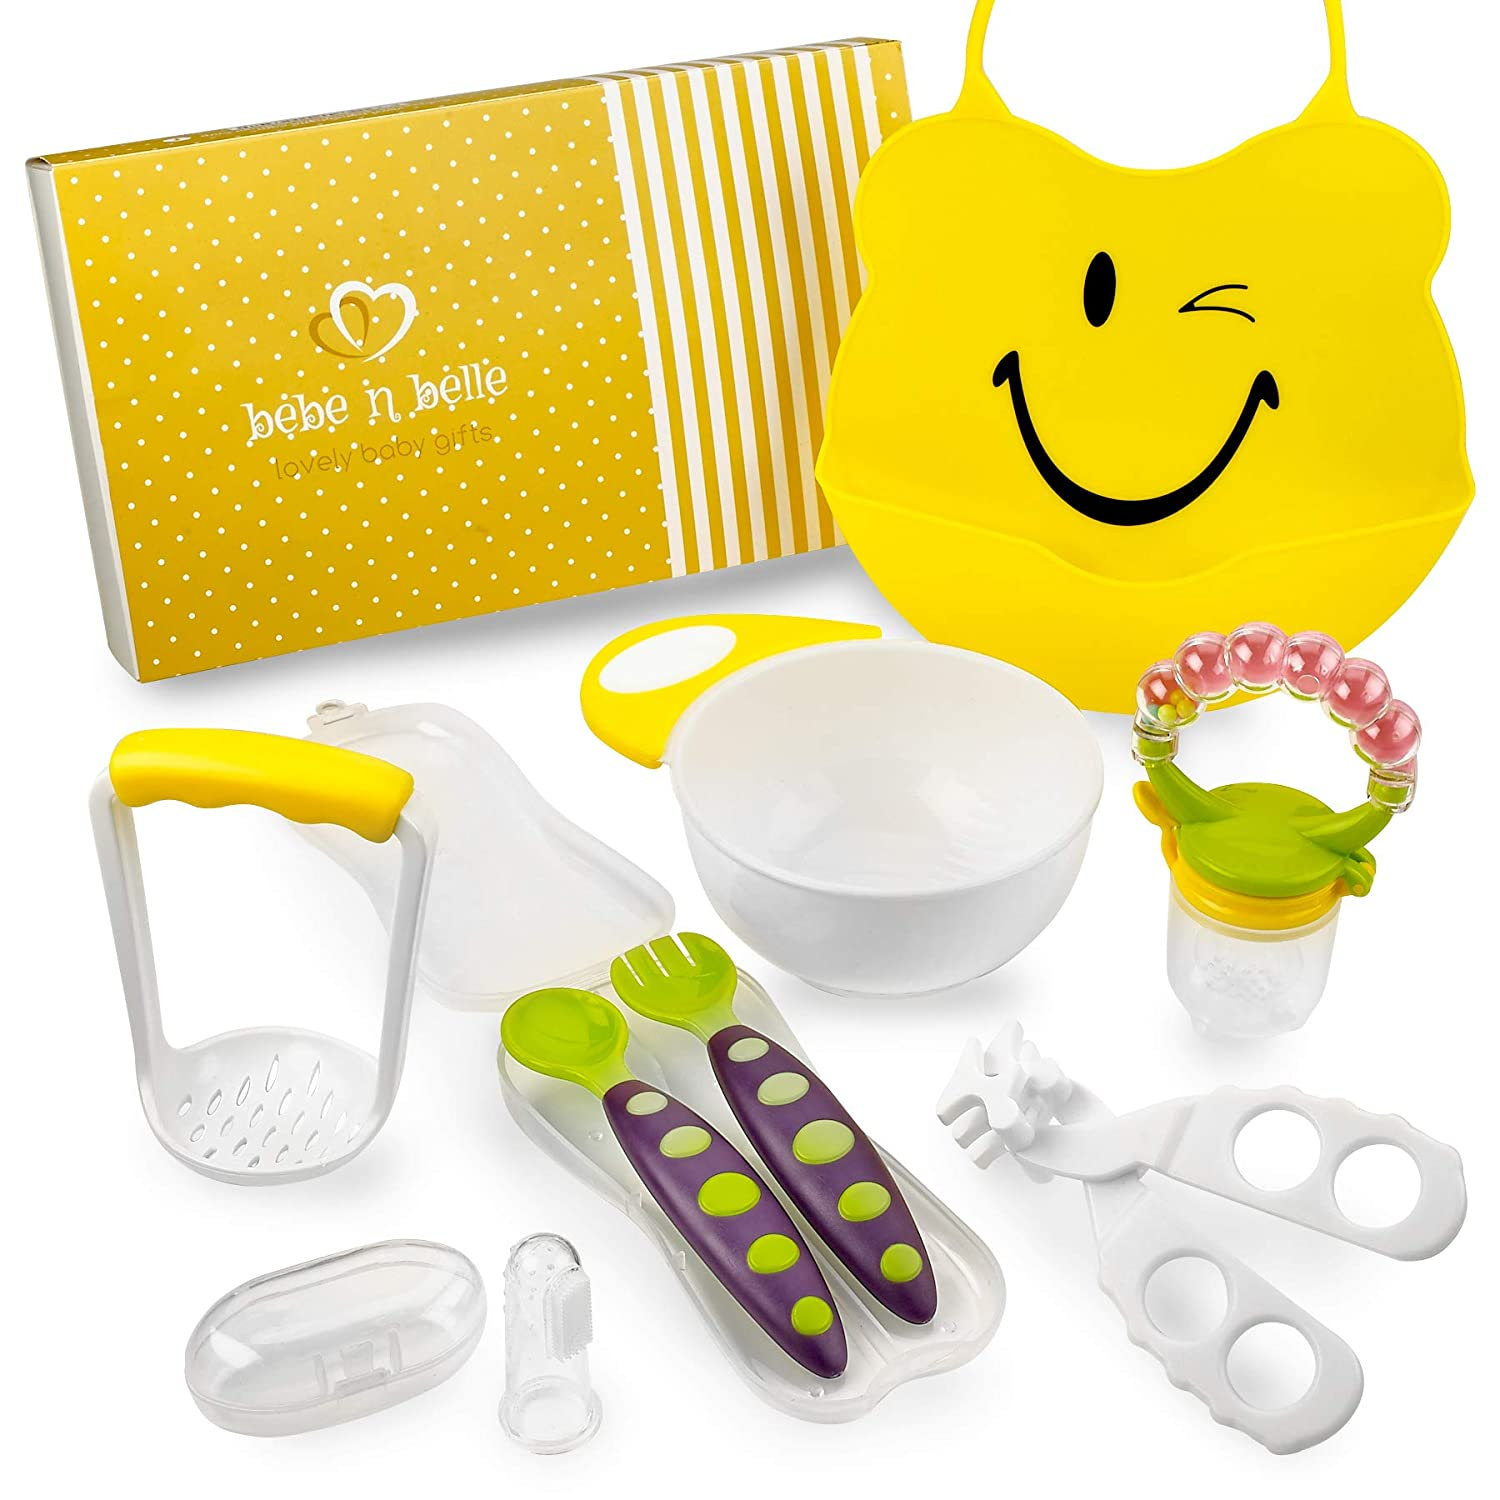 Baby Feeding Gift Set 8PC: Silicone Bib, Masher and Bowl, Spoon and Fork Set, Fruit Feeder with Rattle, Finger Toothbrush and Food Scissors by Bebe N Belle